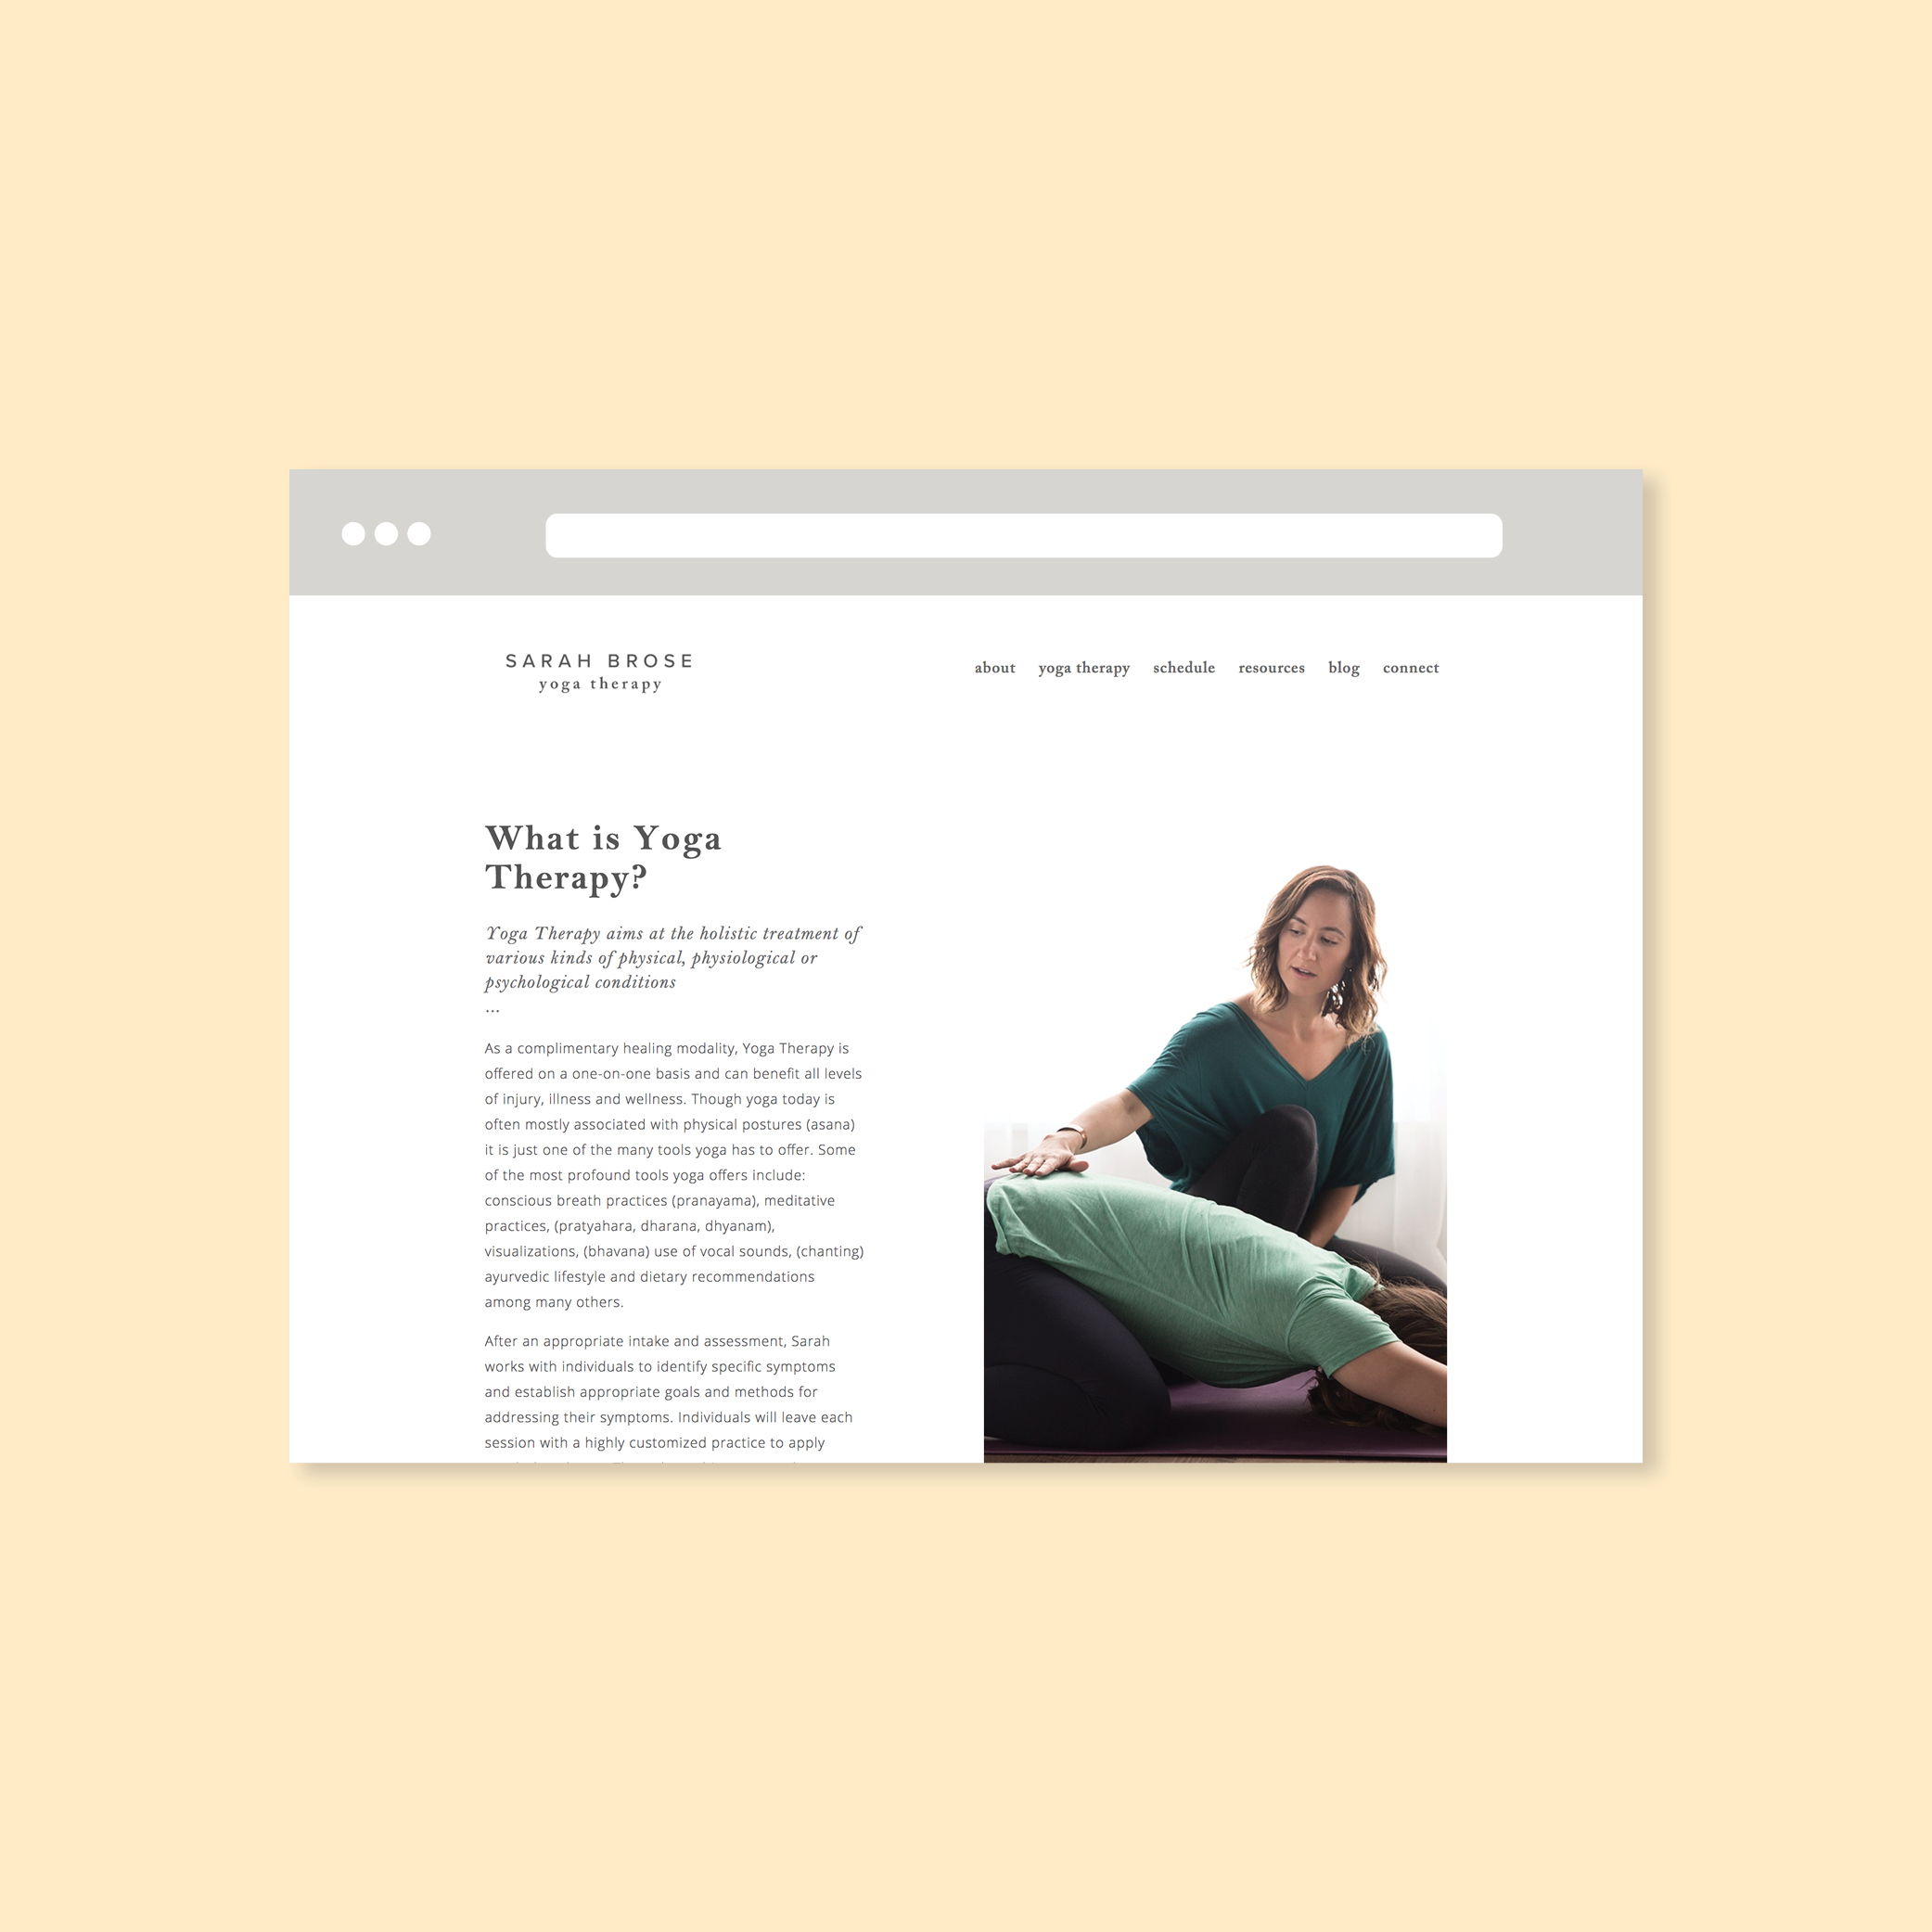 sarah brose yoga therapy website design